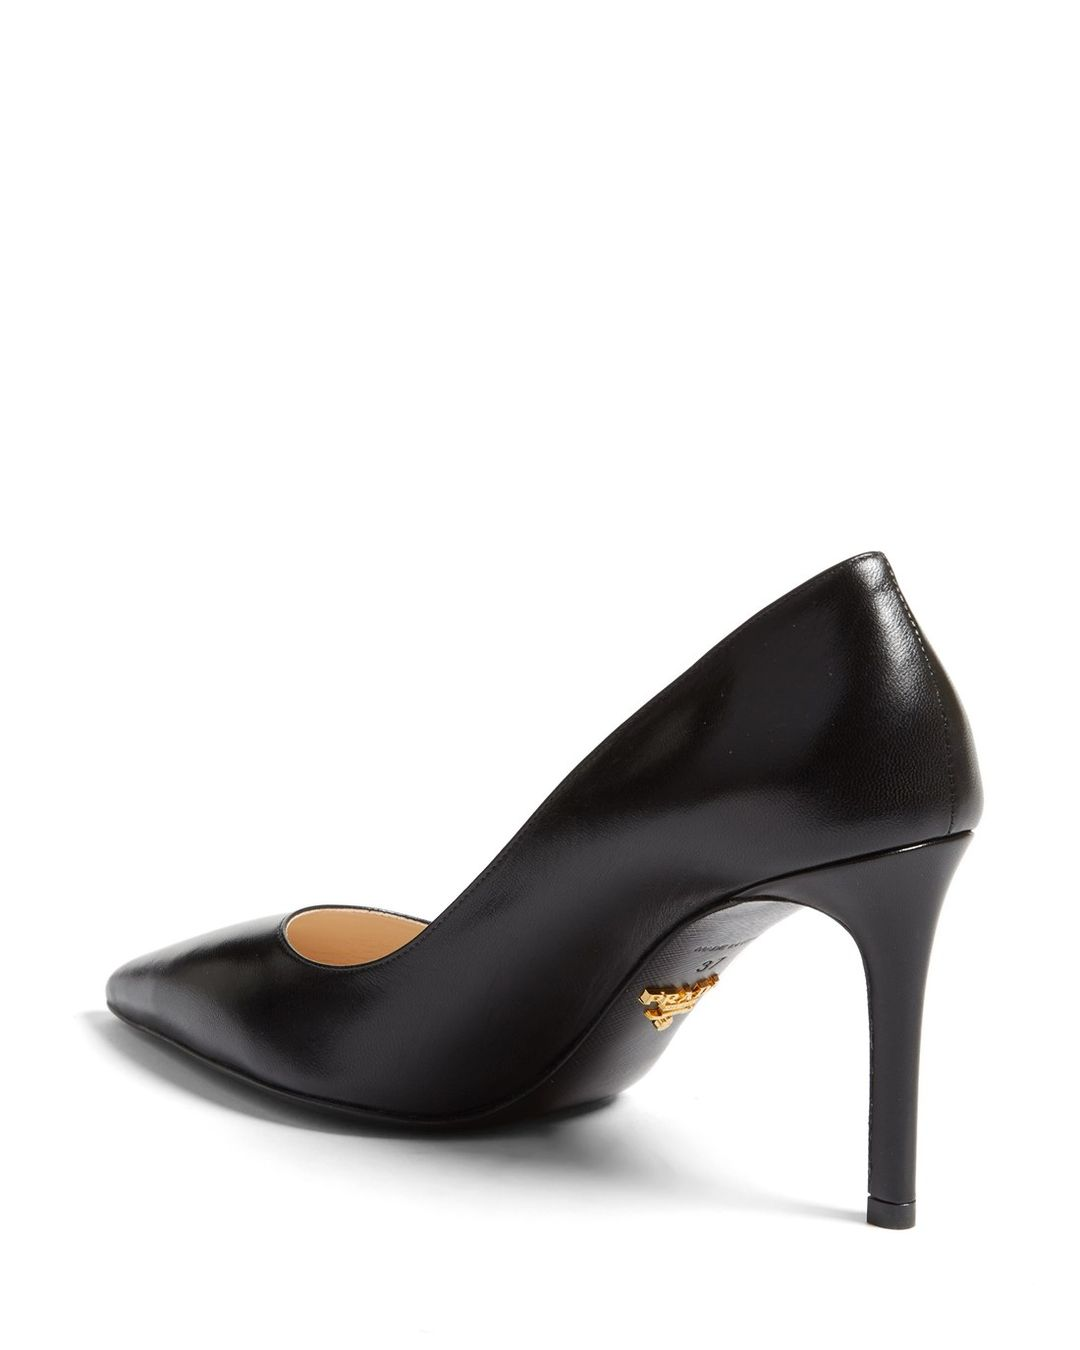 4be5d309544 Where to Buy. Italist. Prada Pointed Toe Pumps